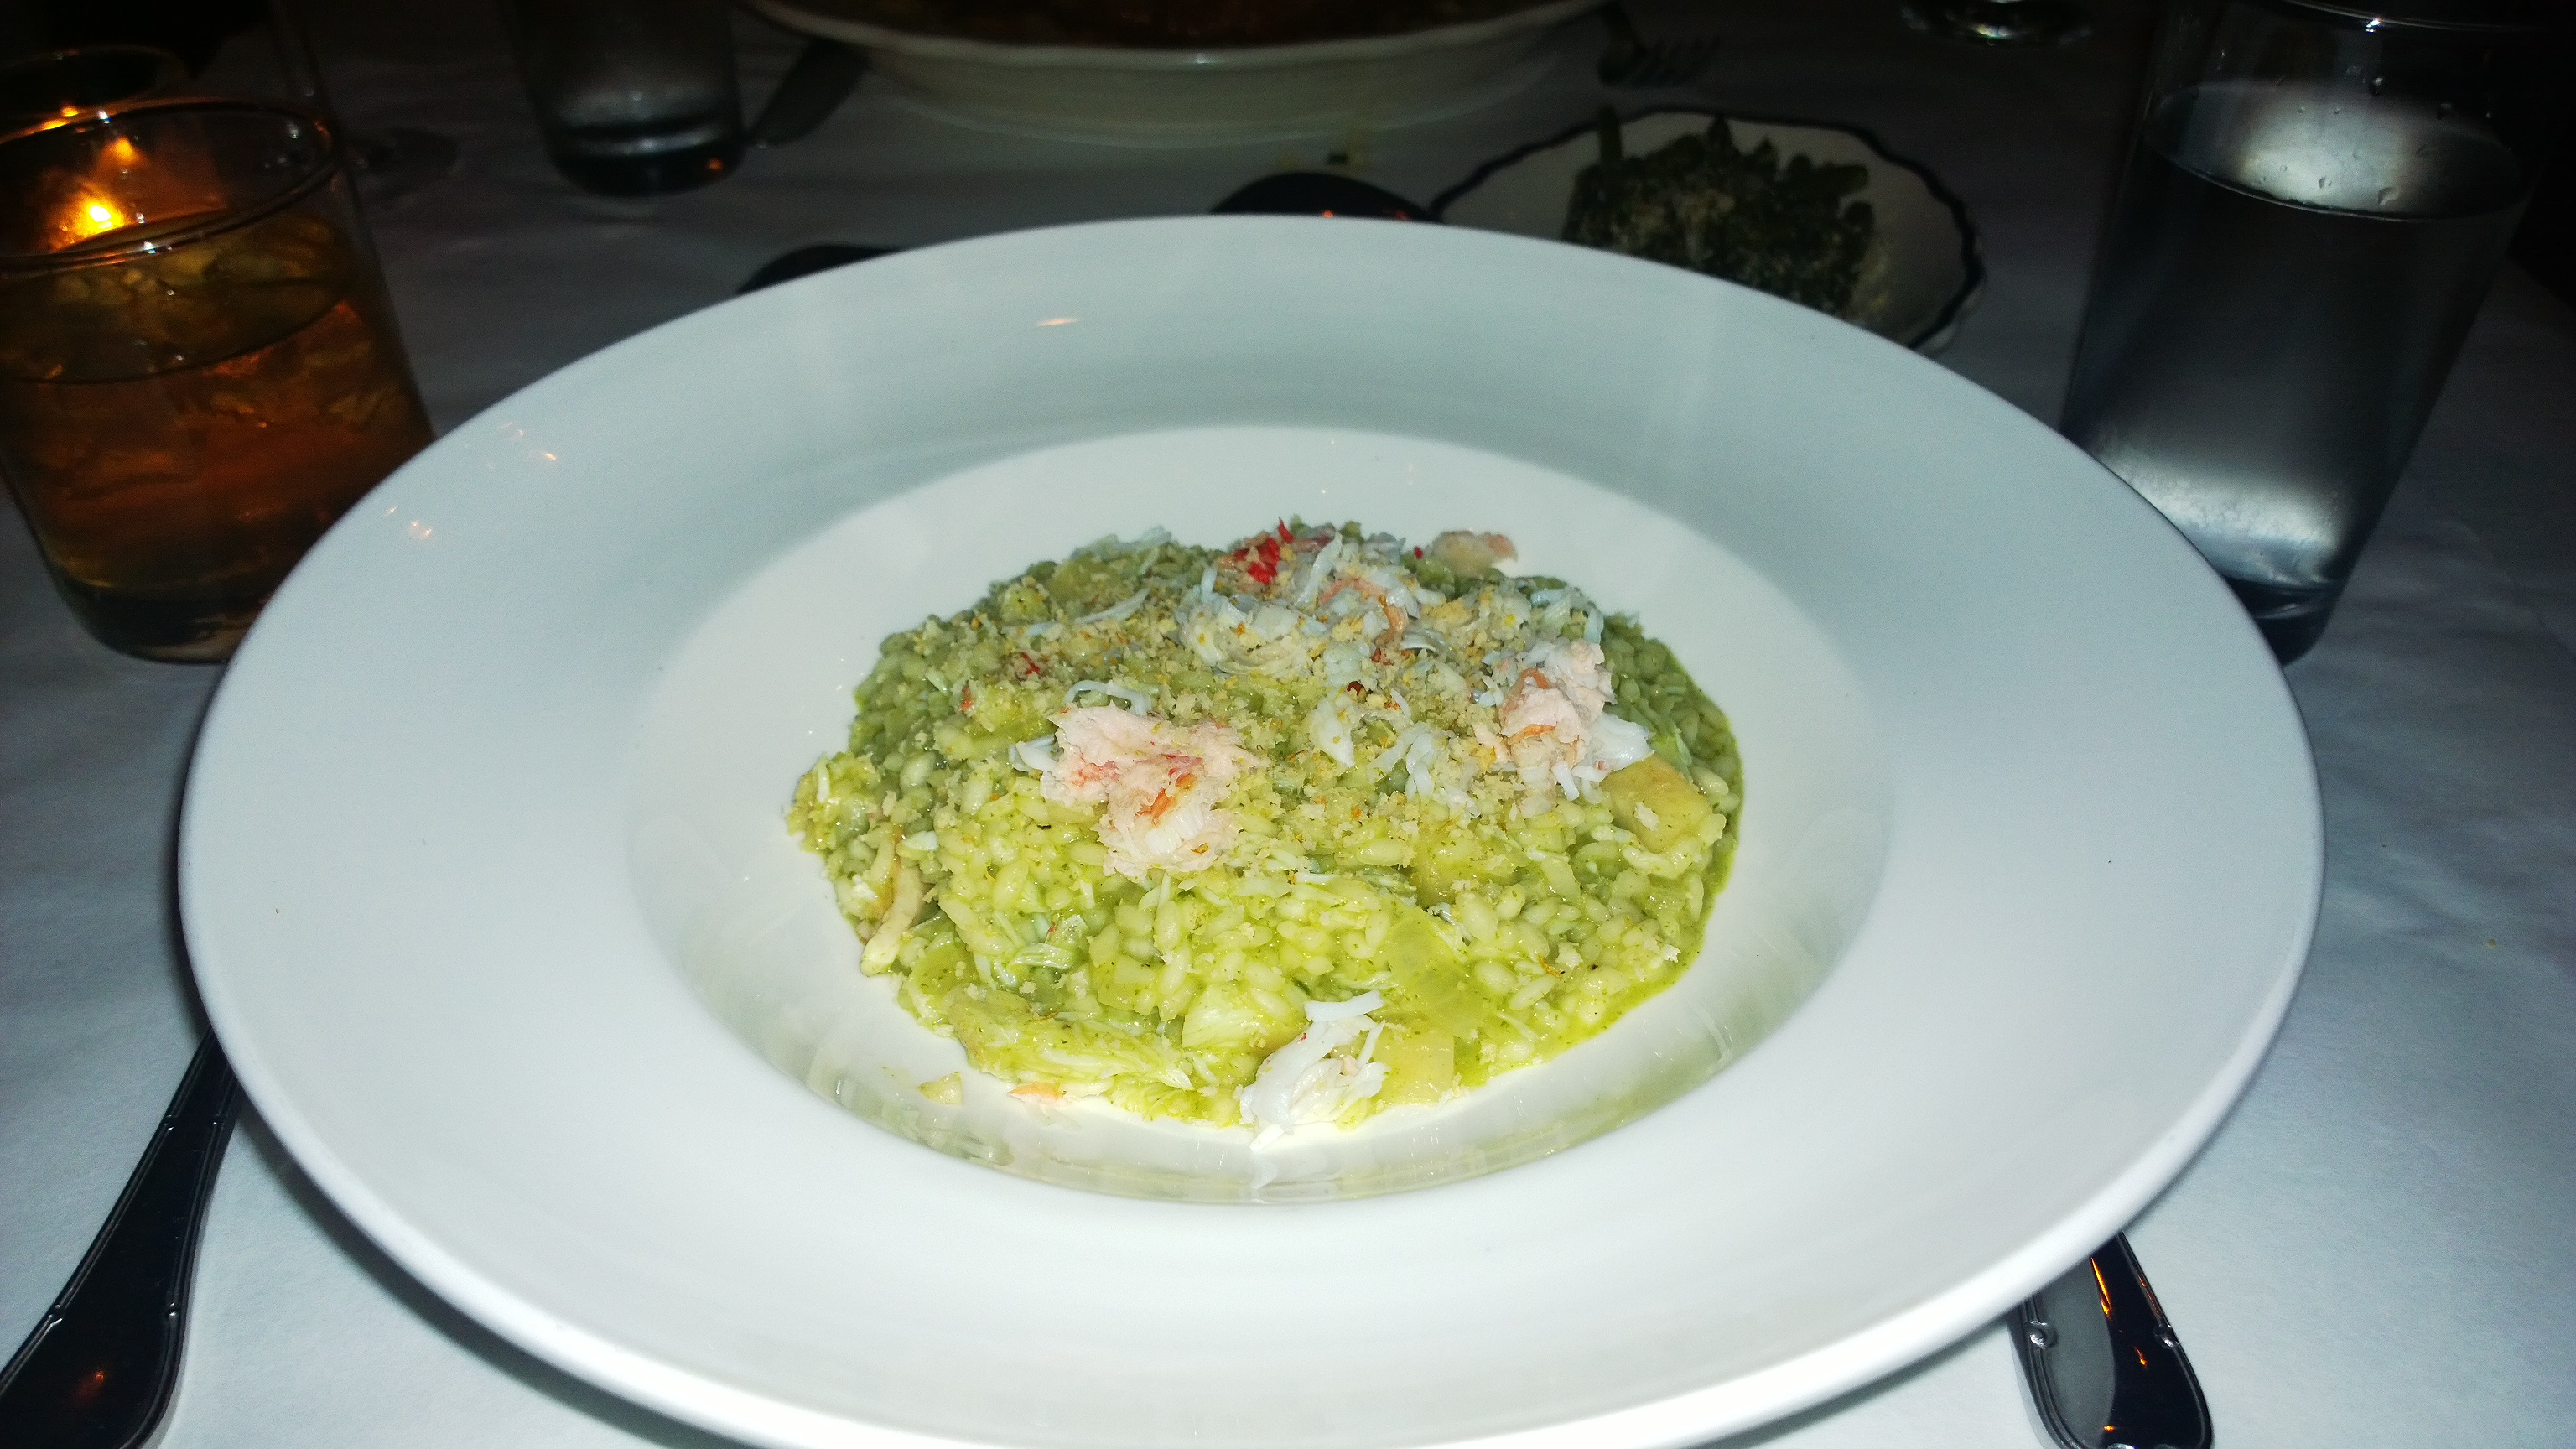 Bill's Food and Drink Risotto